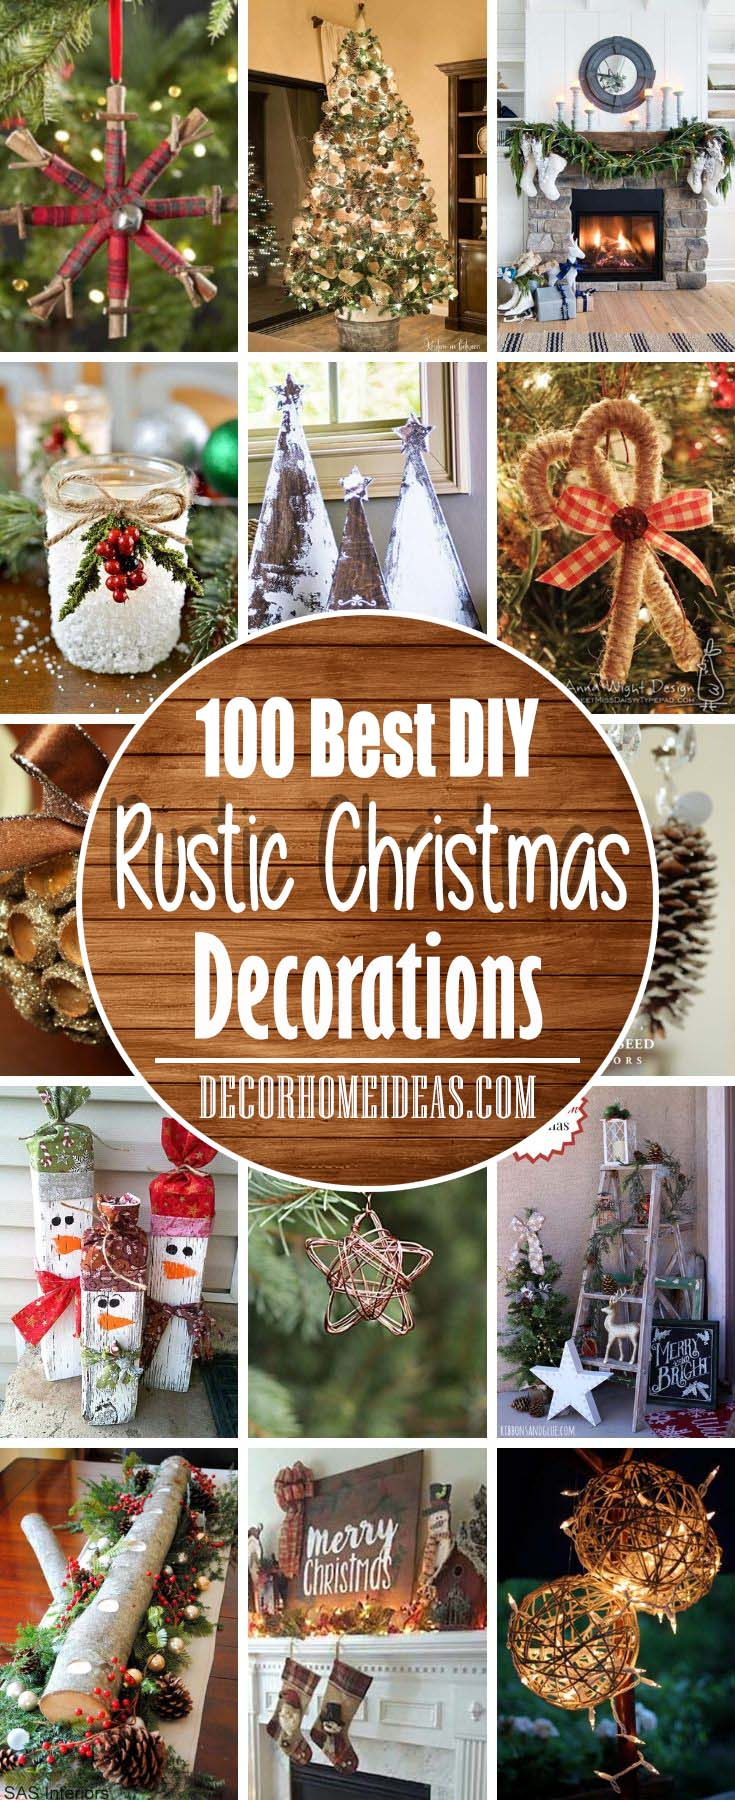 Best DIY Rustic Christmas Decorations and Decor Ideas #Christmas #rustic #diy #decorhomeideas